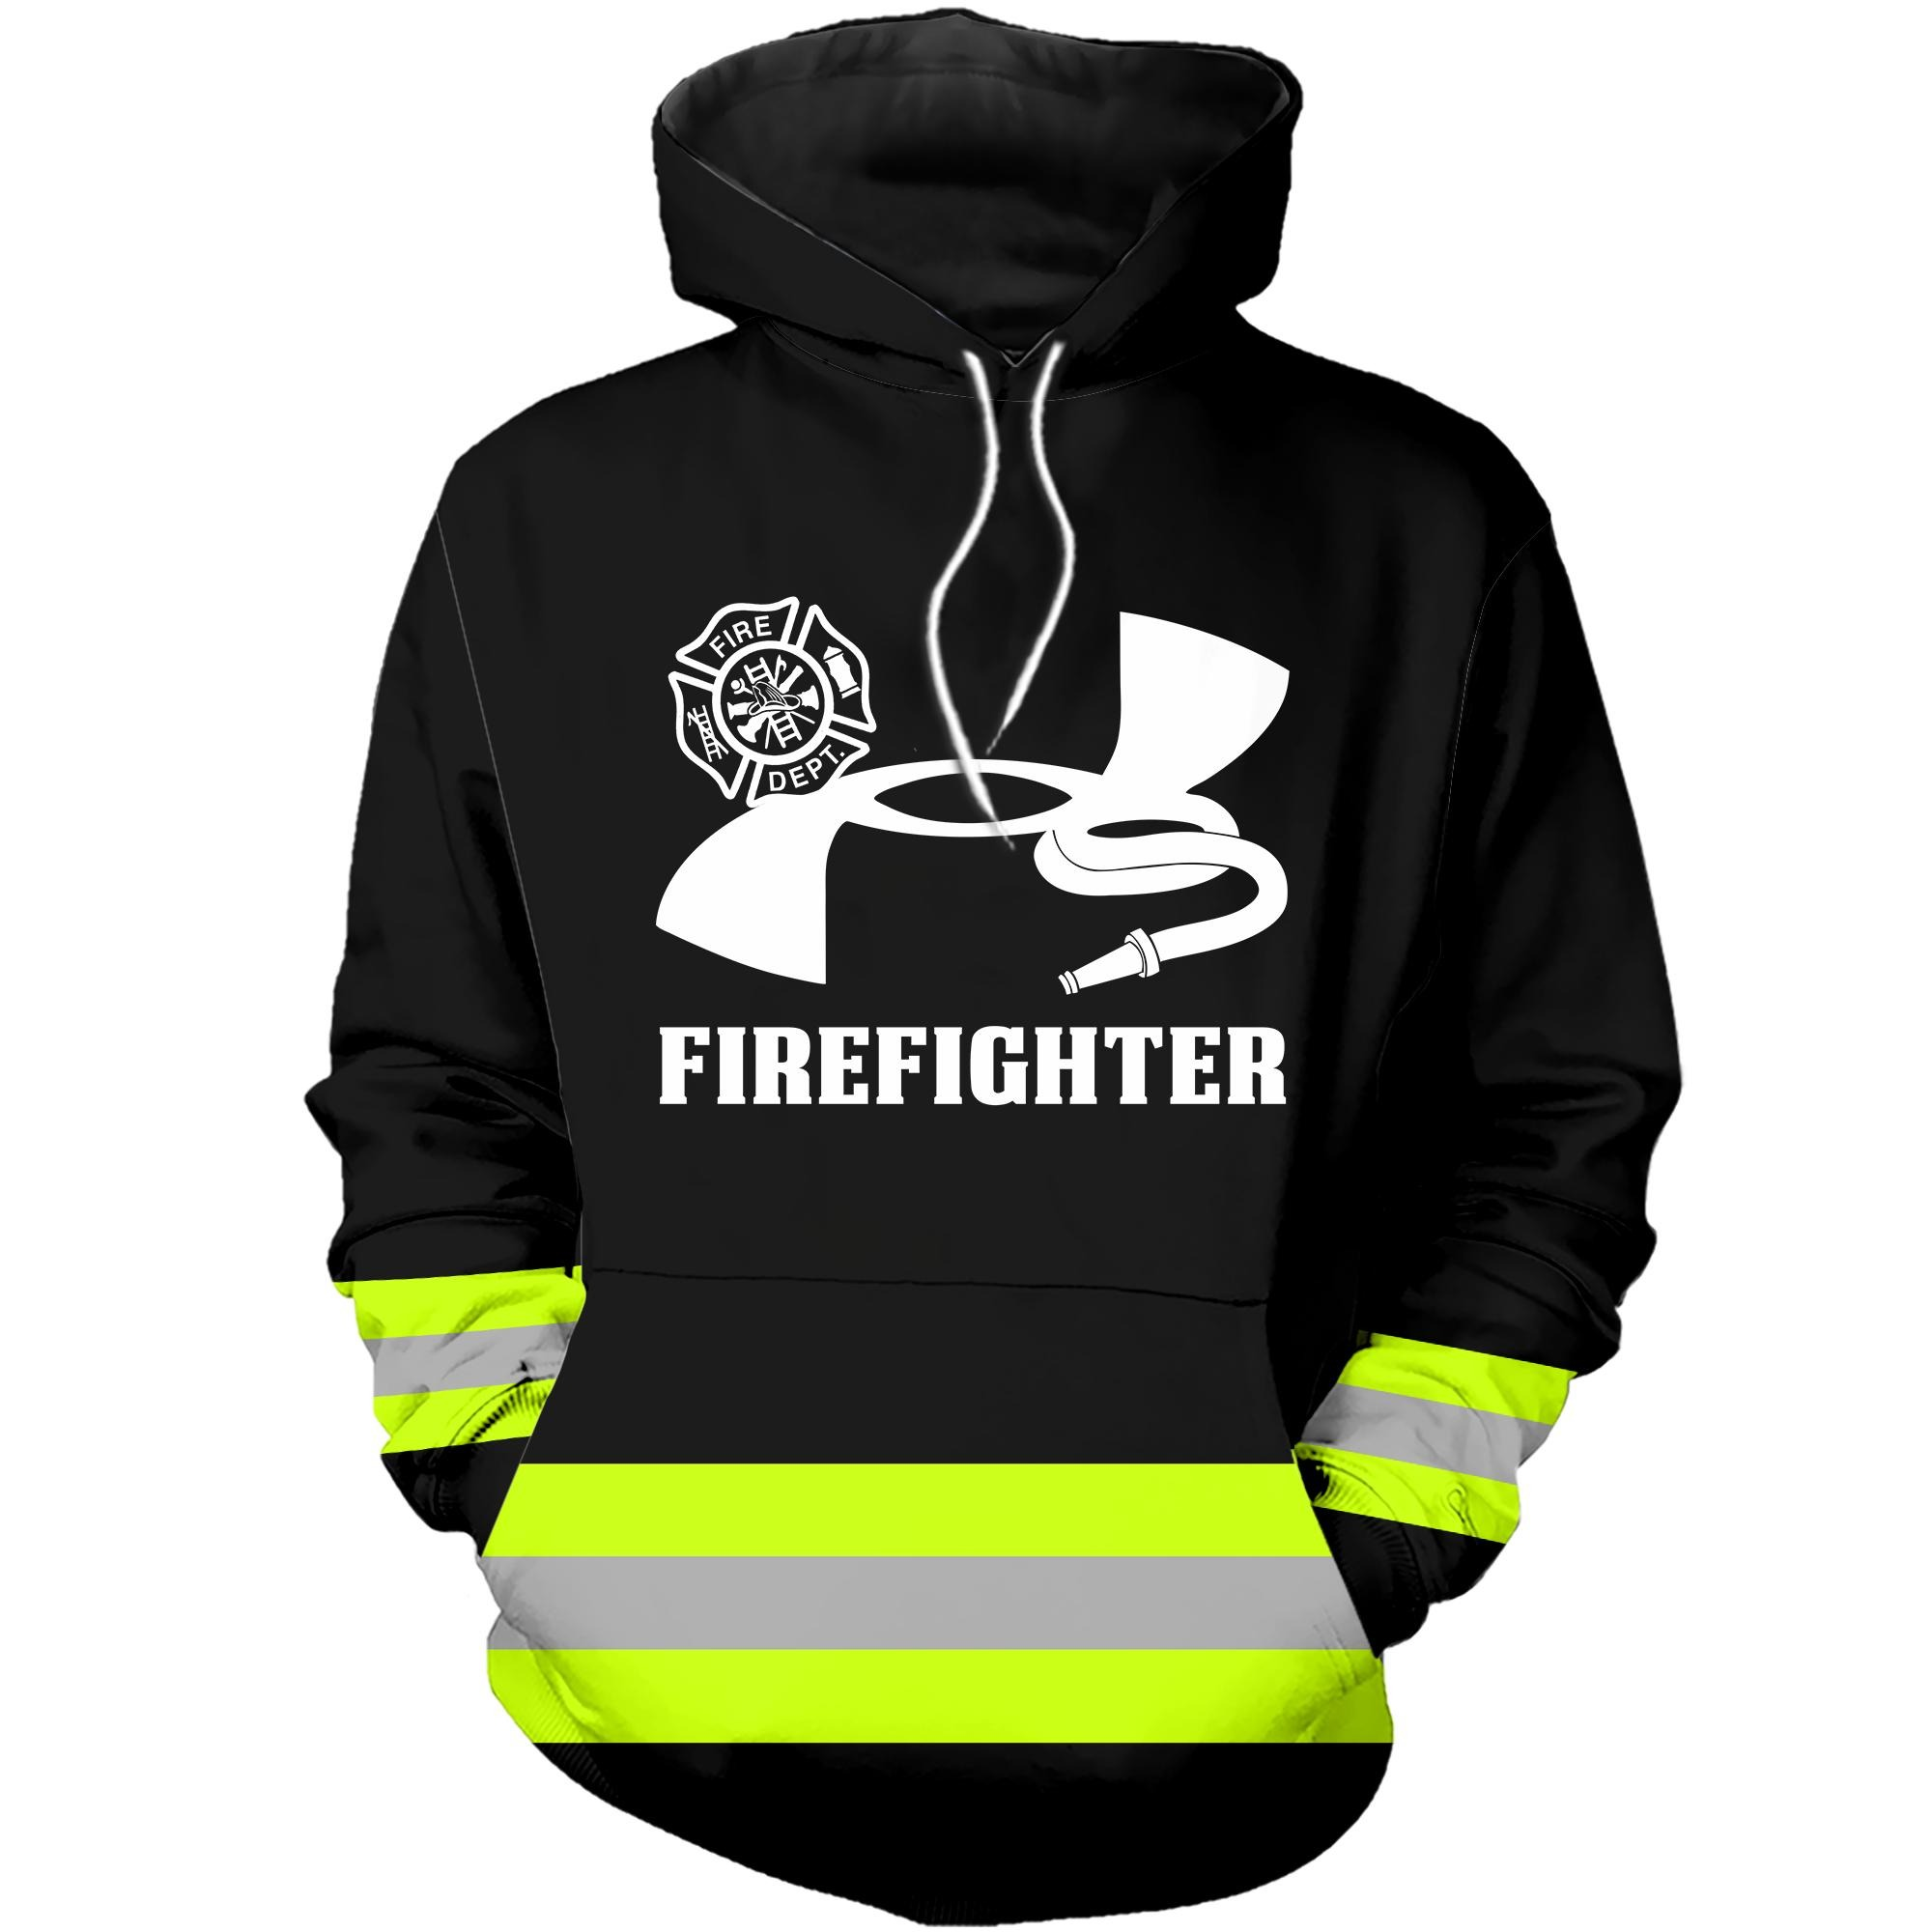 Under Armour firefighter hoodie